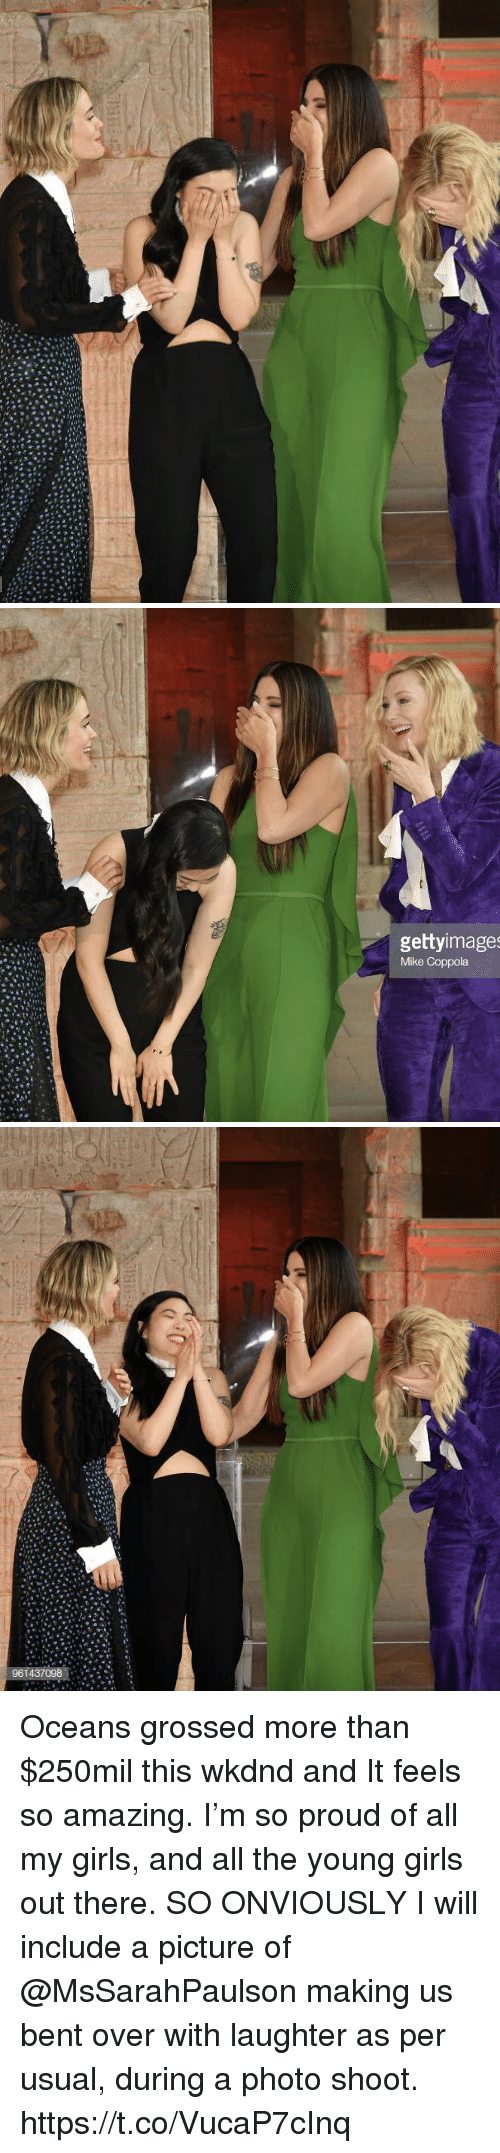 bent: gettyimage  Mike Coppola Oceans grossed more than $250mil this wkdnd and It feels so amazing. I'm so proud of all my girls, and all the young girls out there.   SO ONVIOUSLY I will include a picture of @MsSarahPaulson making us bent over with laughter as per usual, during a photo shoot. https://t.co/VucaP7cInq